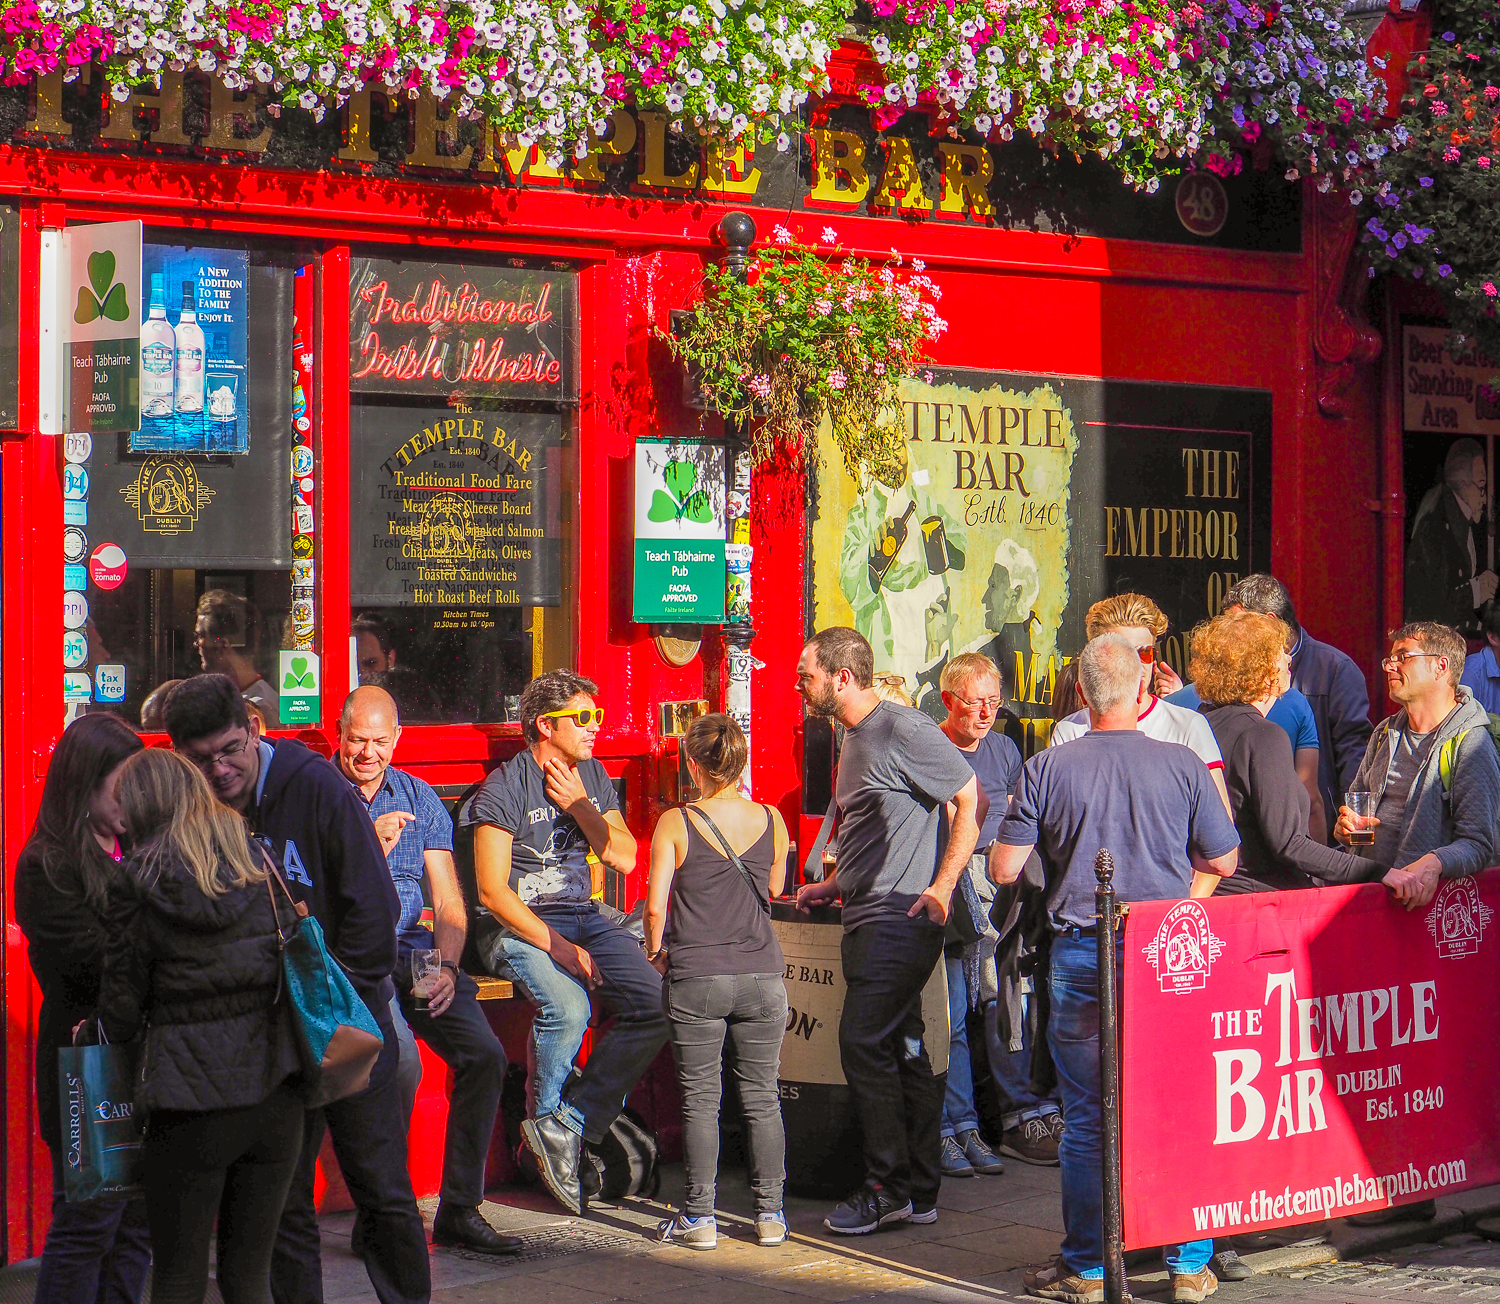 Afternoon sunshine in the streets of Temple Bar, Dublin, Ireland.